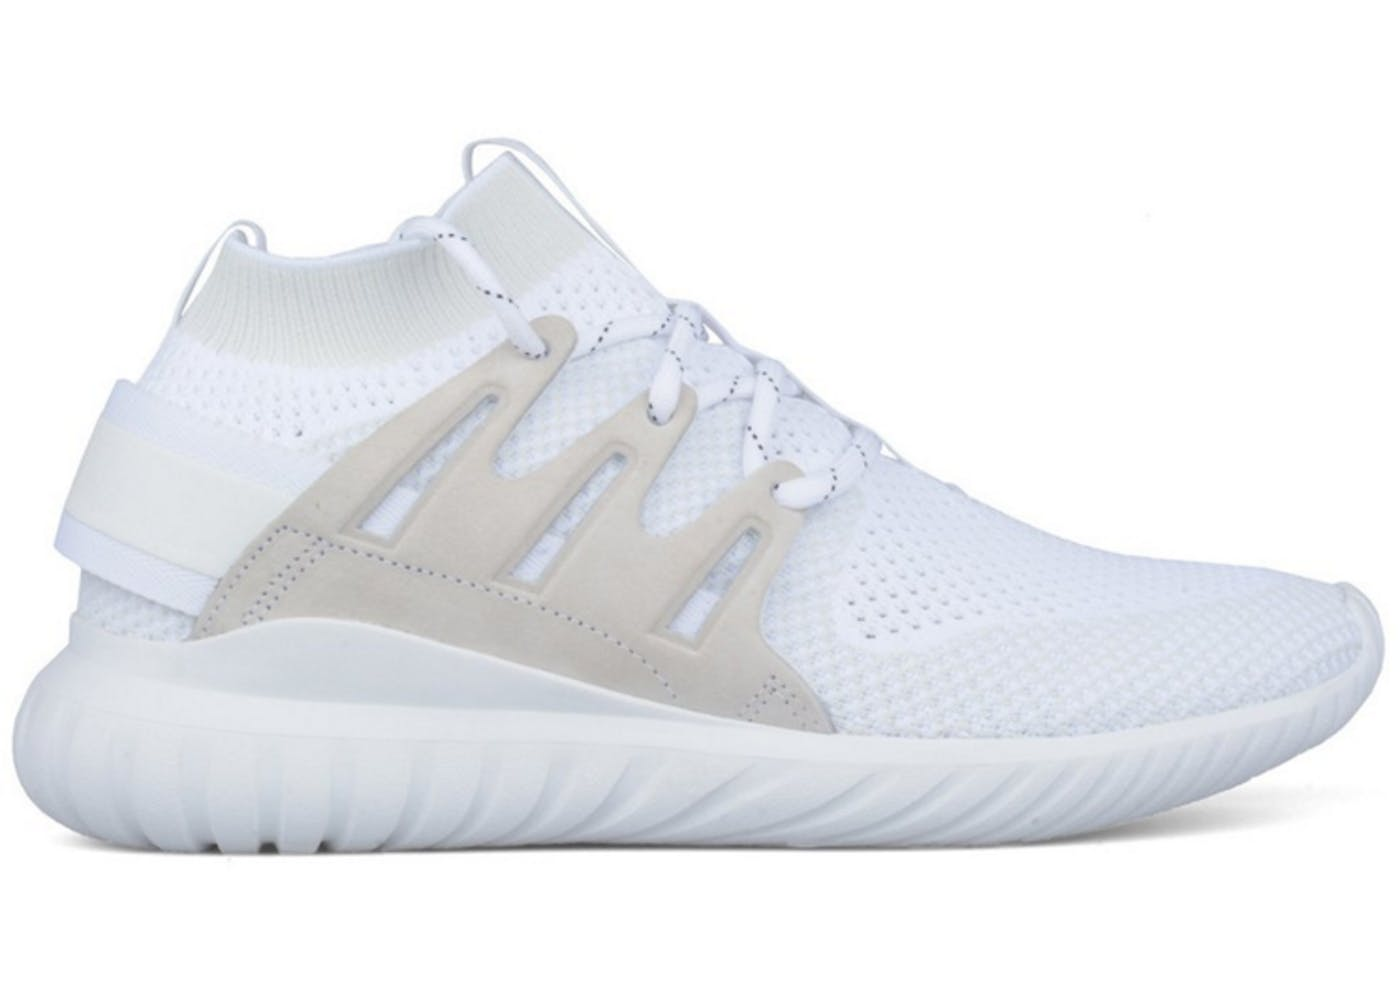 Adidas Tubular Nova Culture Kings Nuovi Arrivi IT LOGIX snc